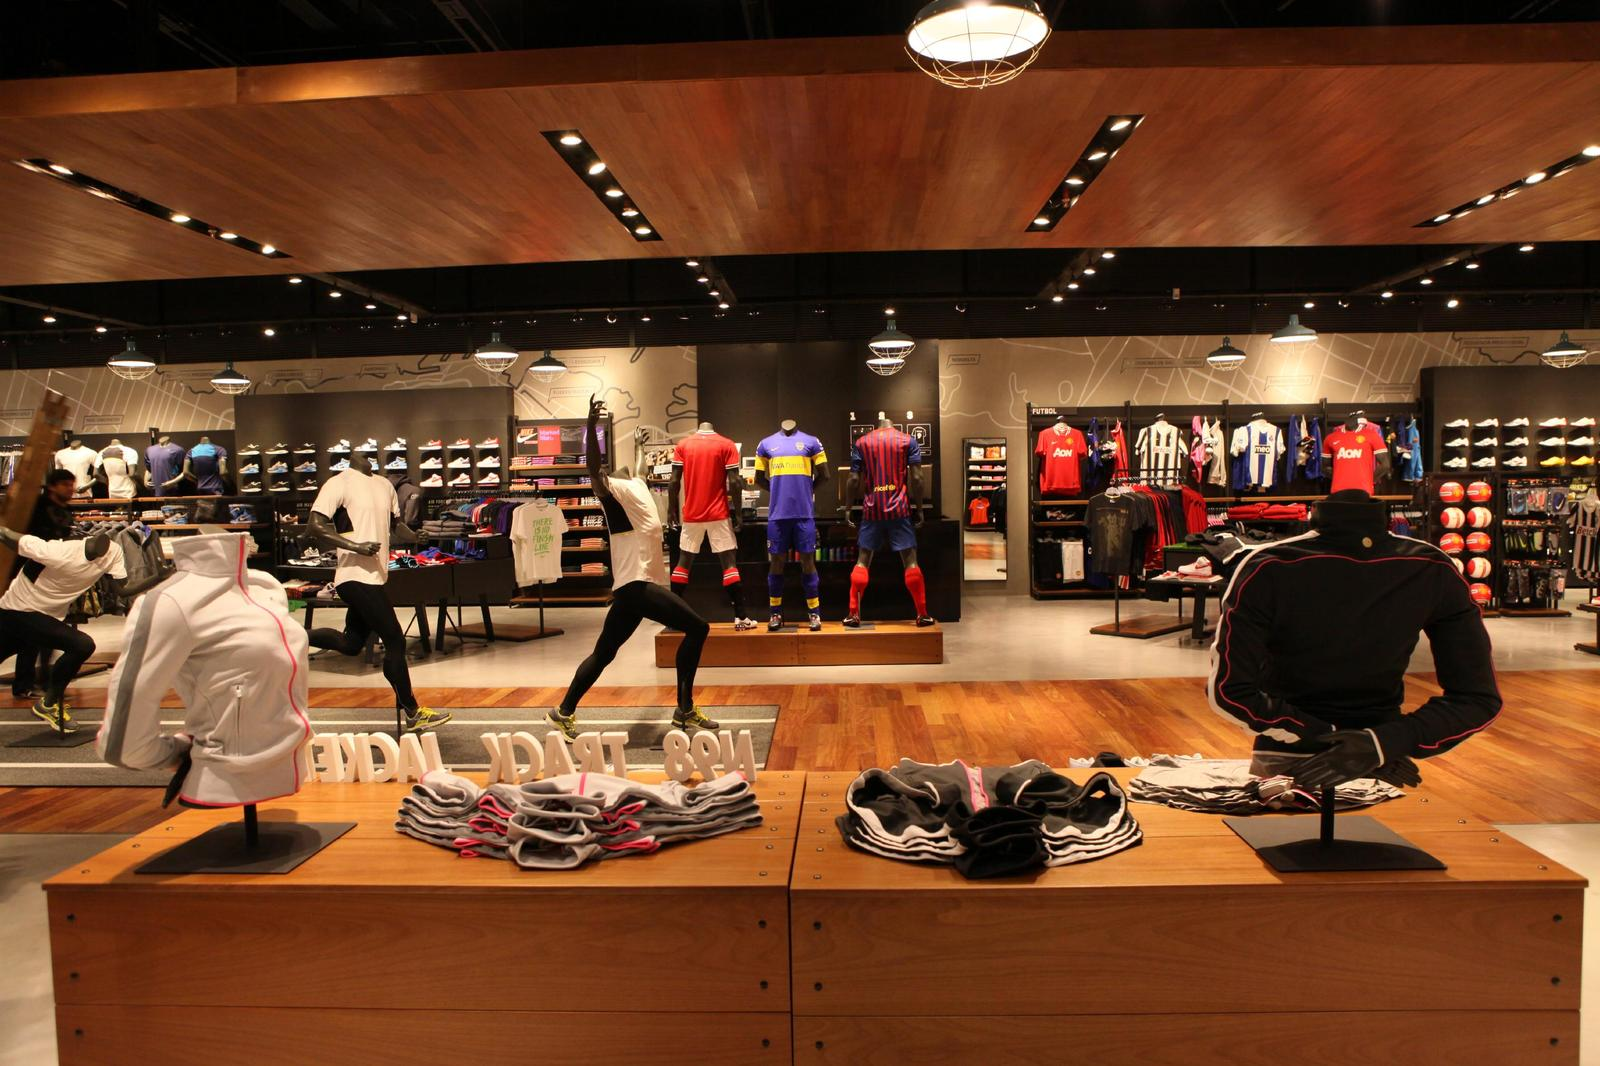 Design Nike Shoes, Clothing and Gear. Men's; Overview; Running; Basketball; Football; Baseball; Training; Action Sports; Nike Sportswear.